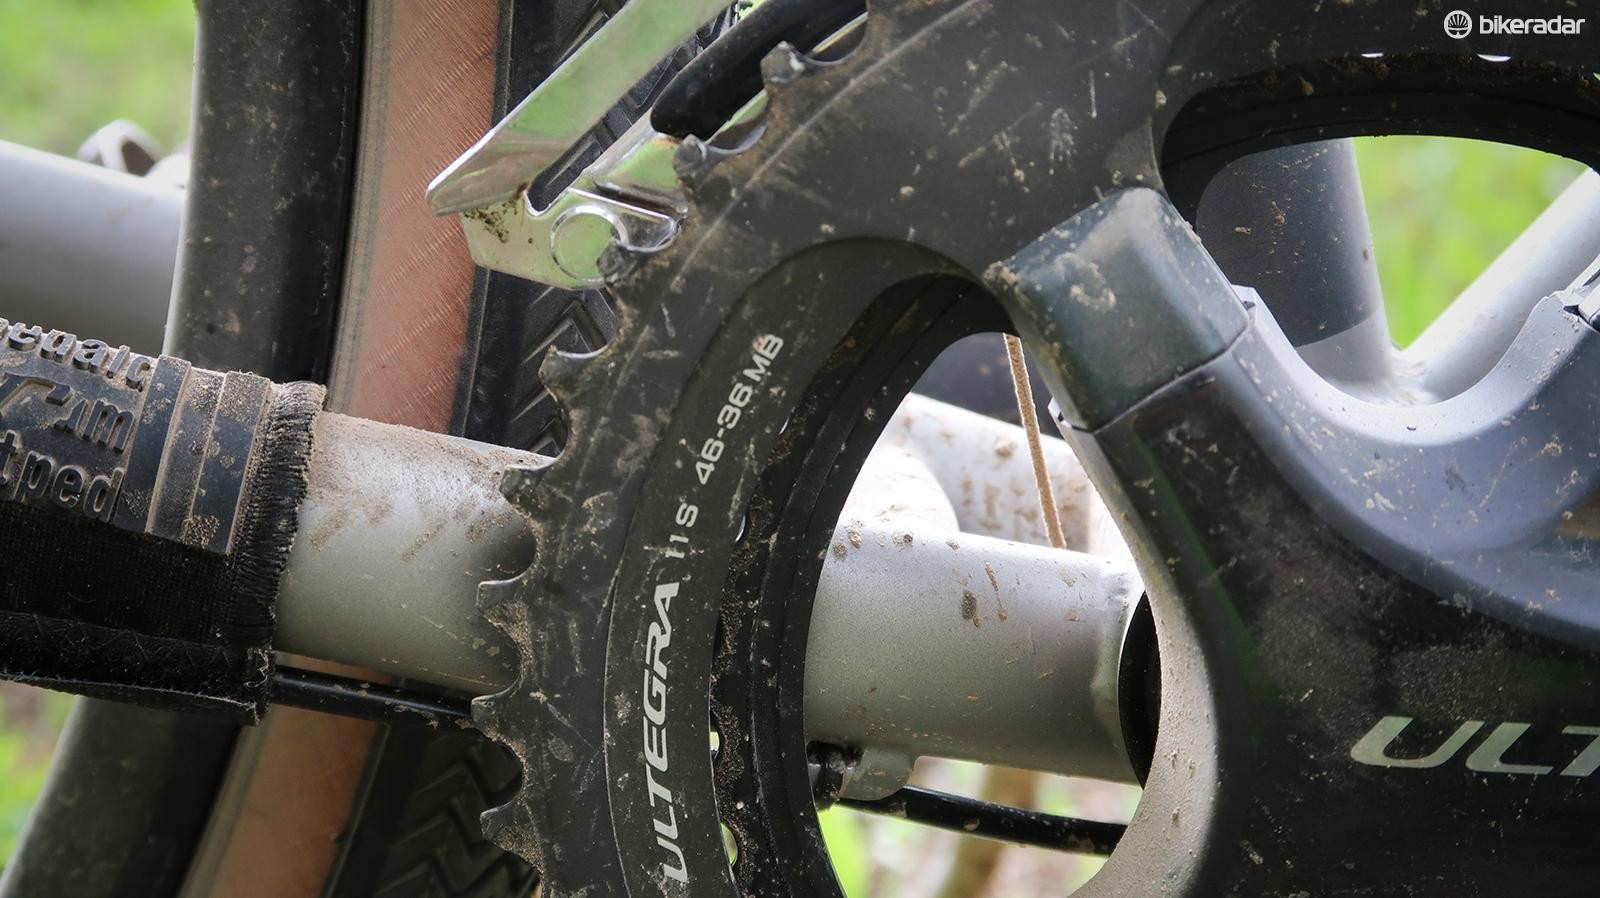 The 46/36t chainring combo isn't suited to loaded touring in the mountains